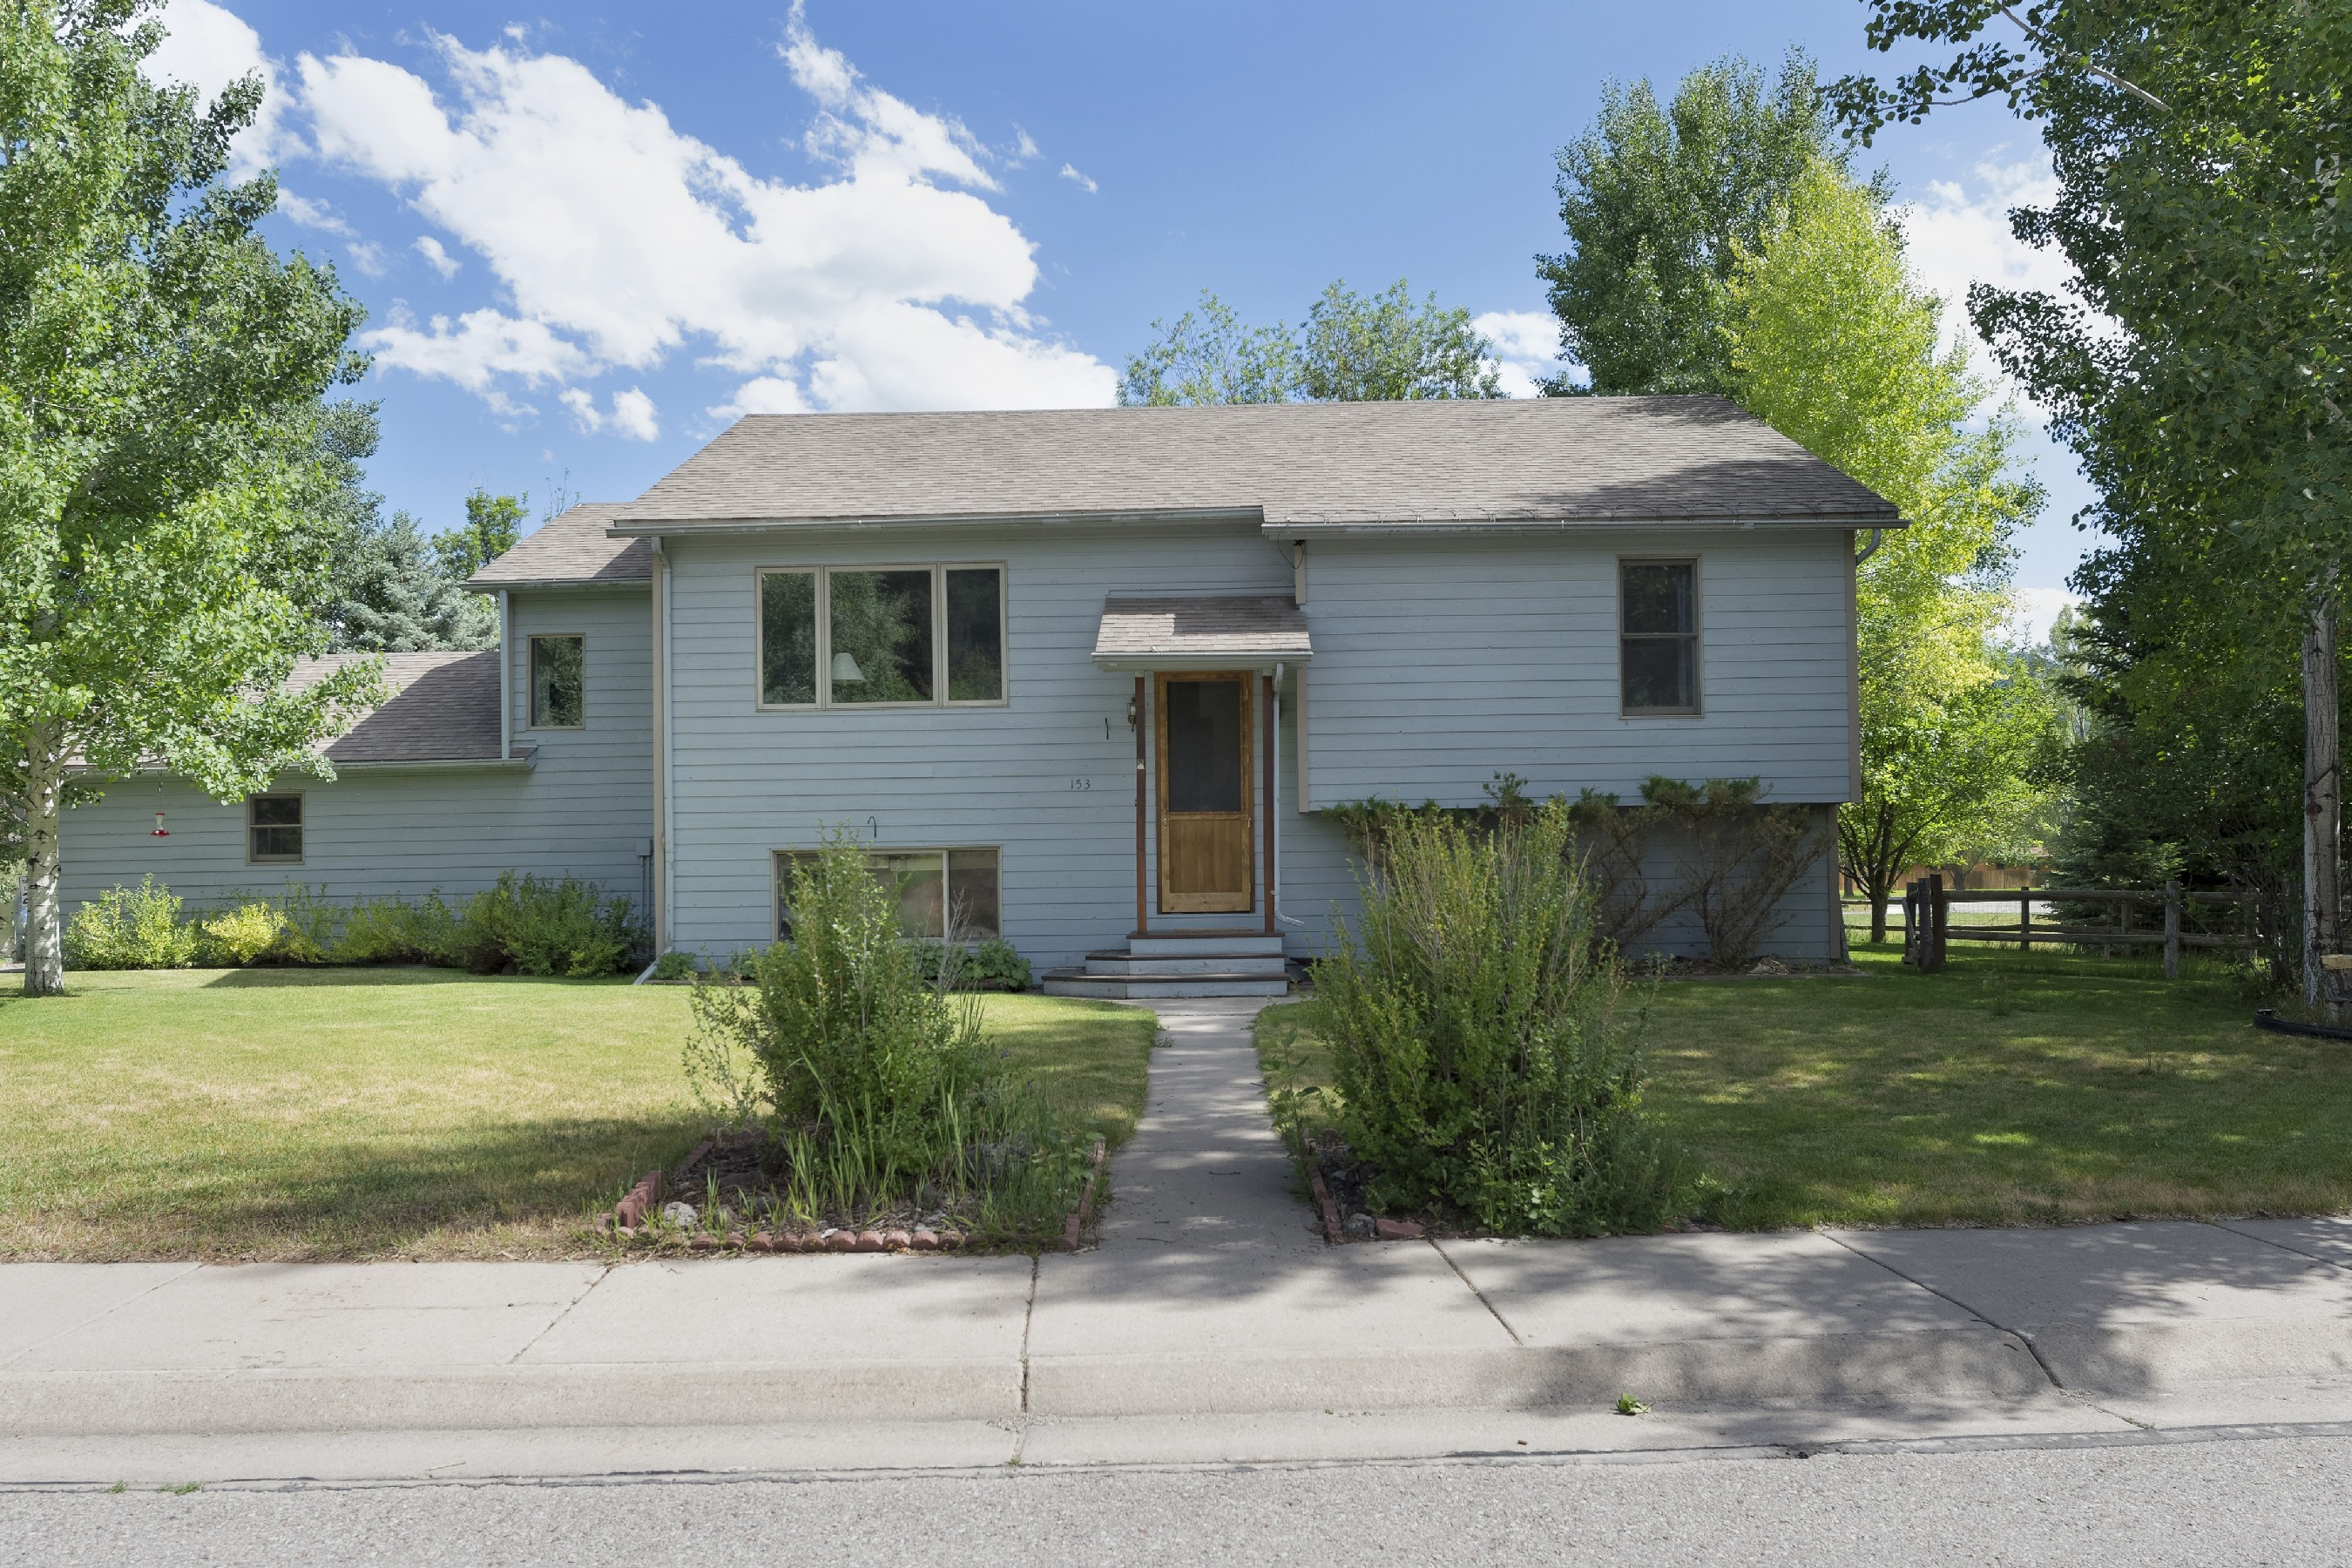 Other Residential for Sale at Blue Lake 0153 Quail Run Carbondale, Colorado, 81623 United States